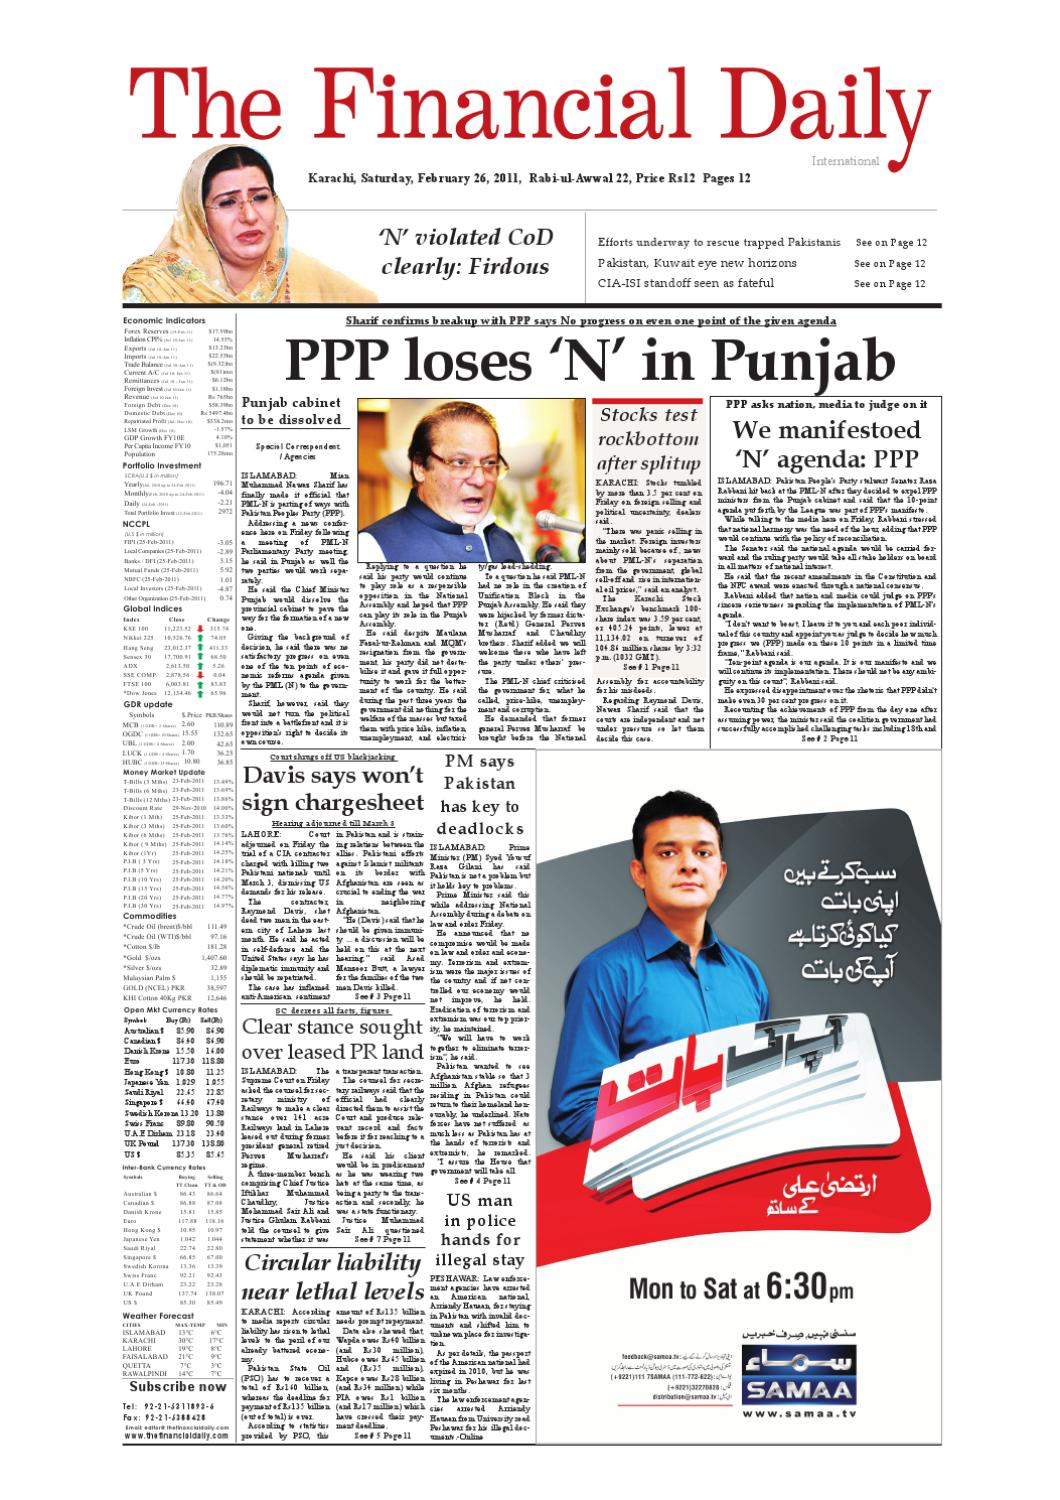 The Financial Daily-Epaper-26-02-2011 by The Financial Daily